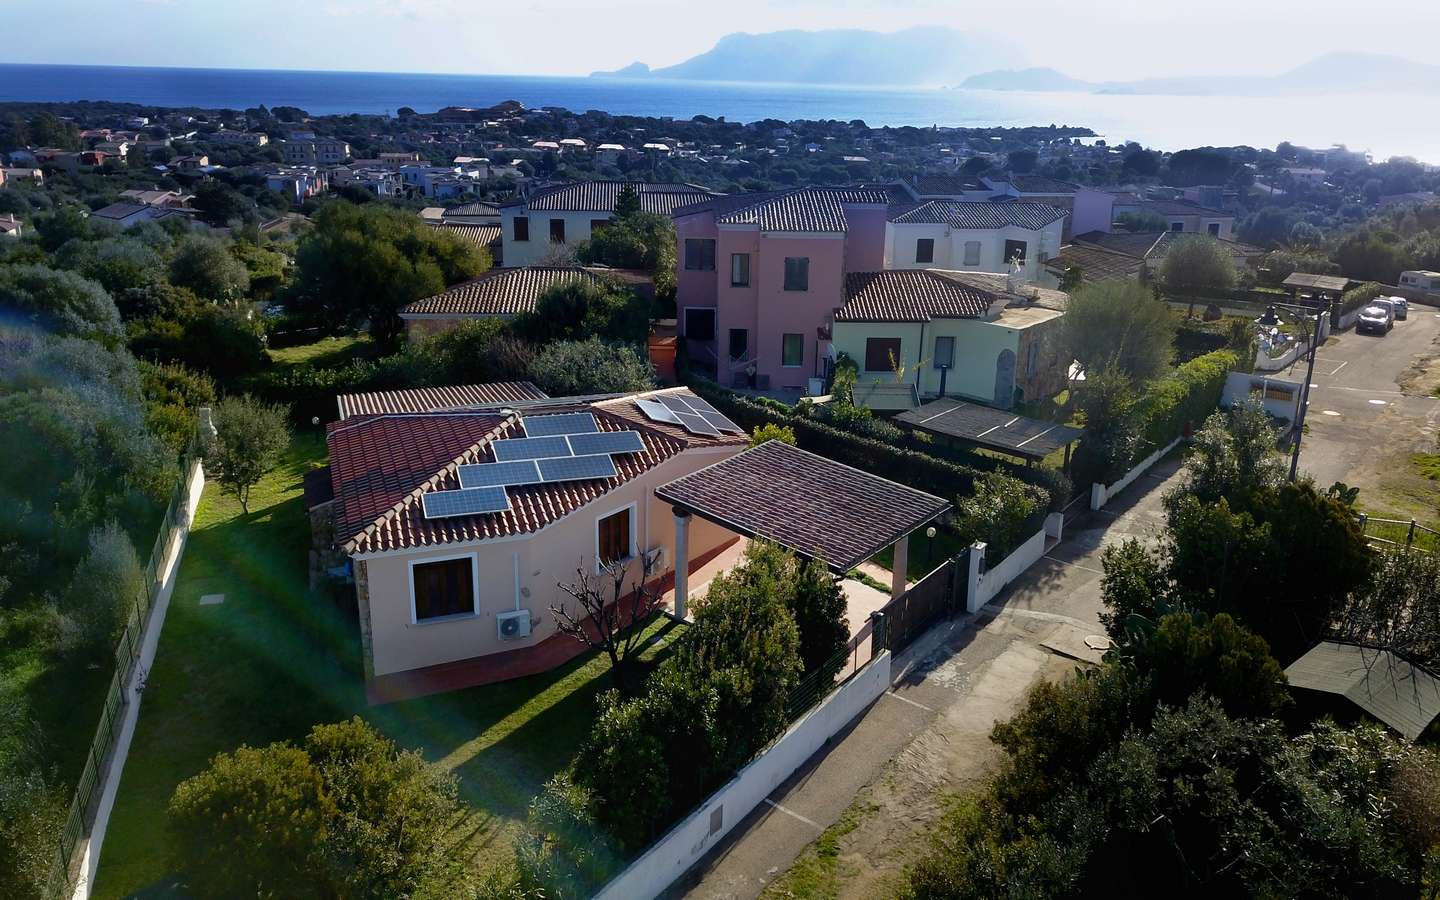 Property for sale Olbia Sardinia; ref.Villa Iara